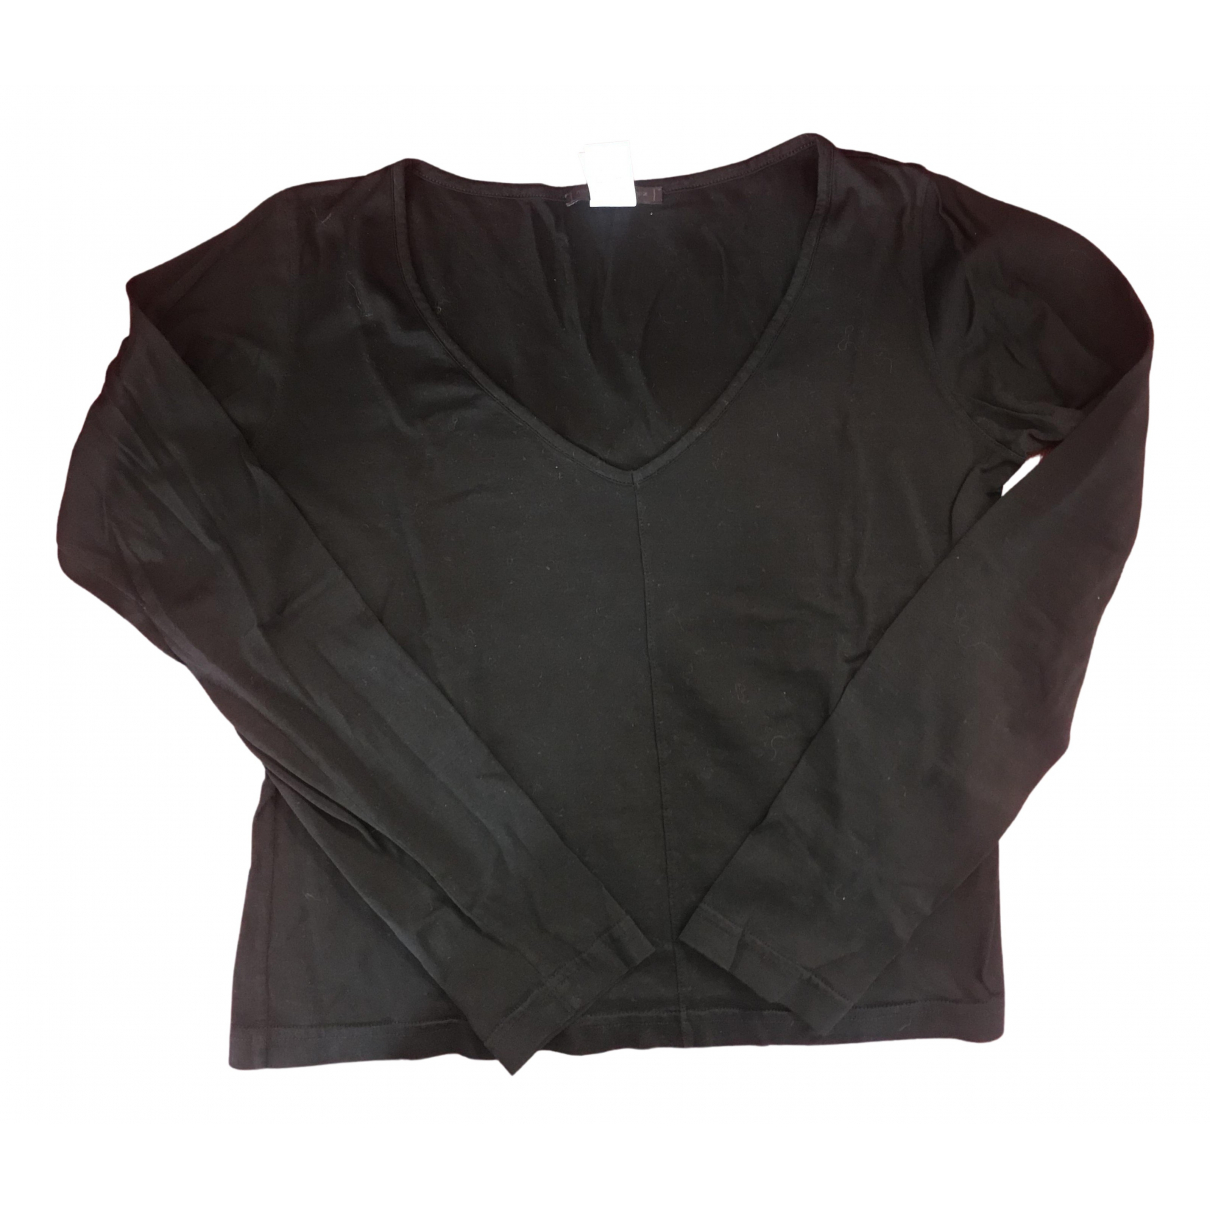 Narciso Rodriguez N Black Cotton  top for Women S International